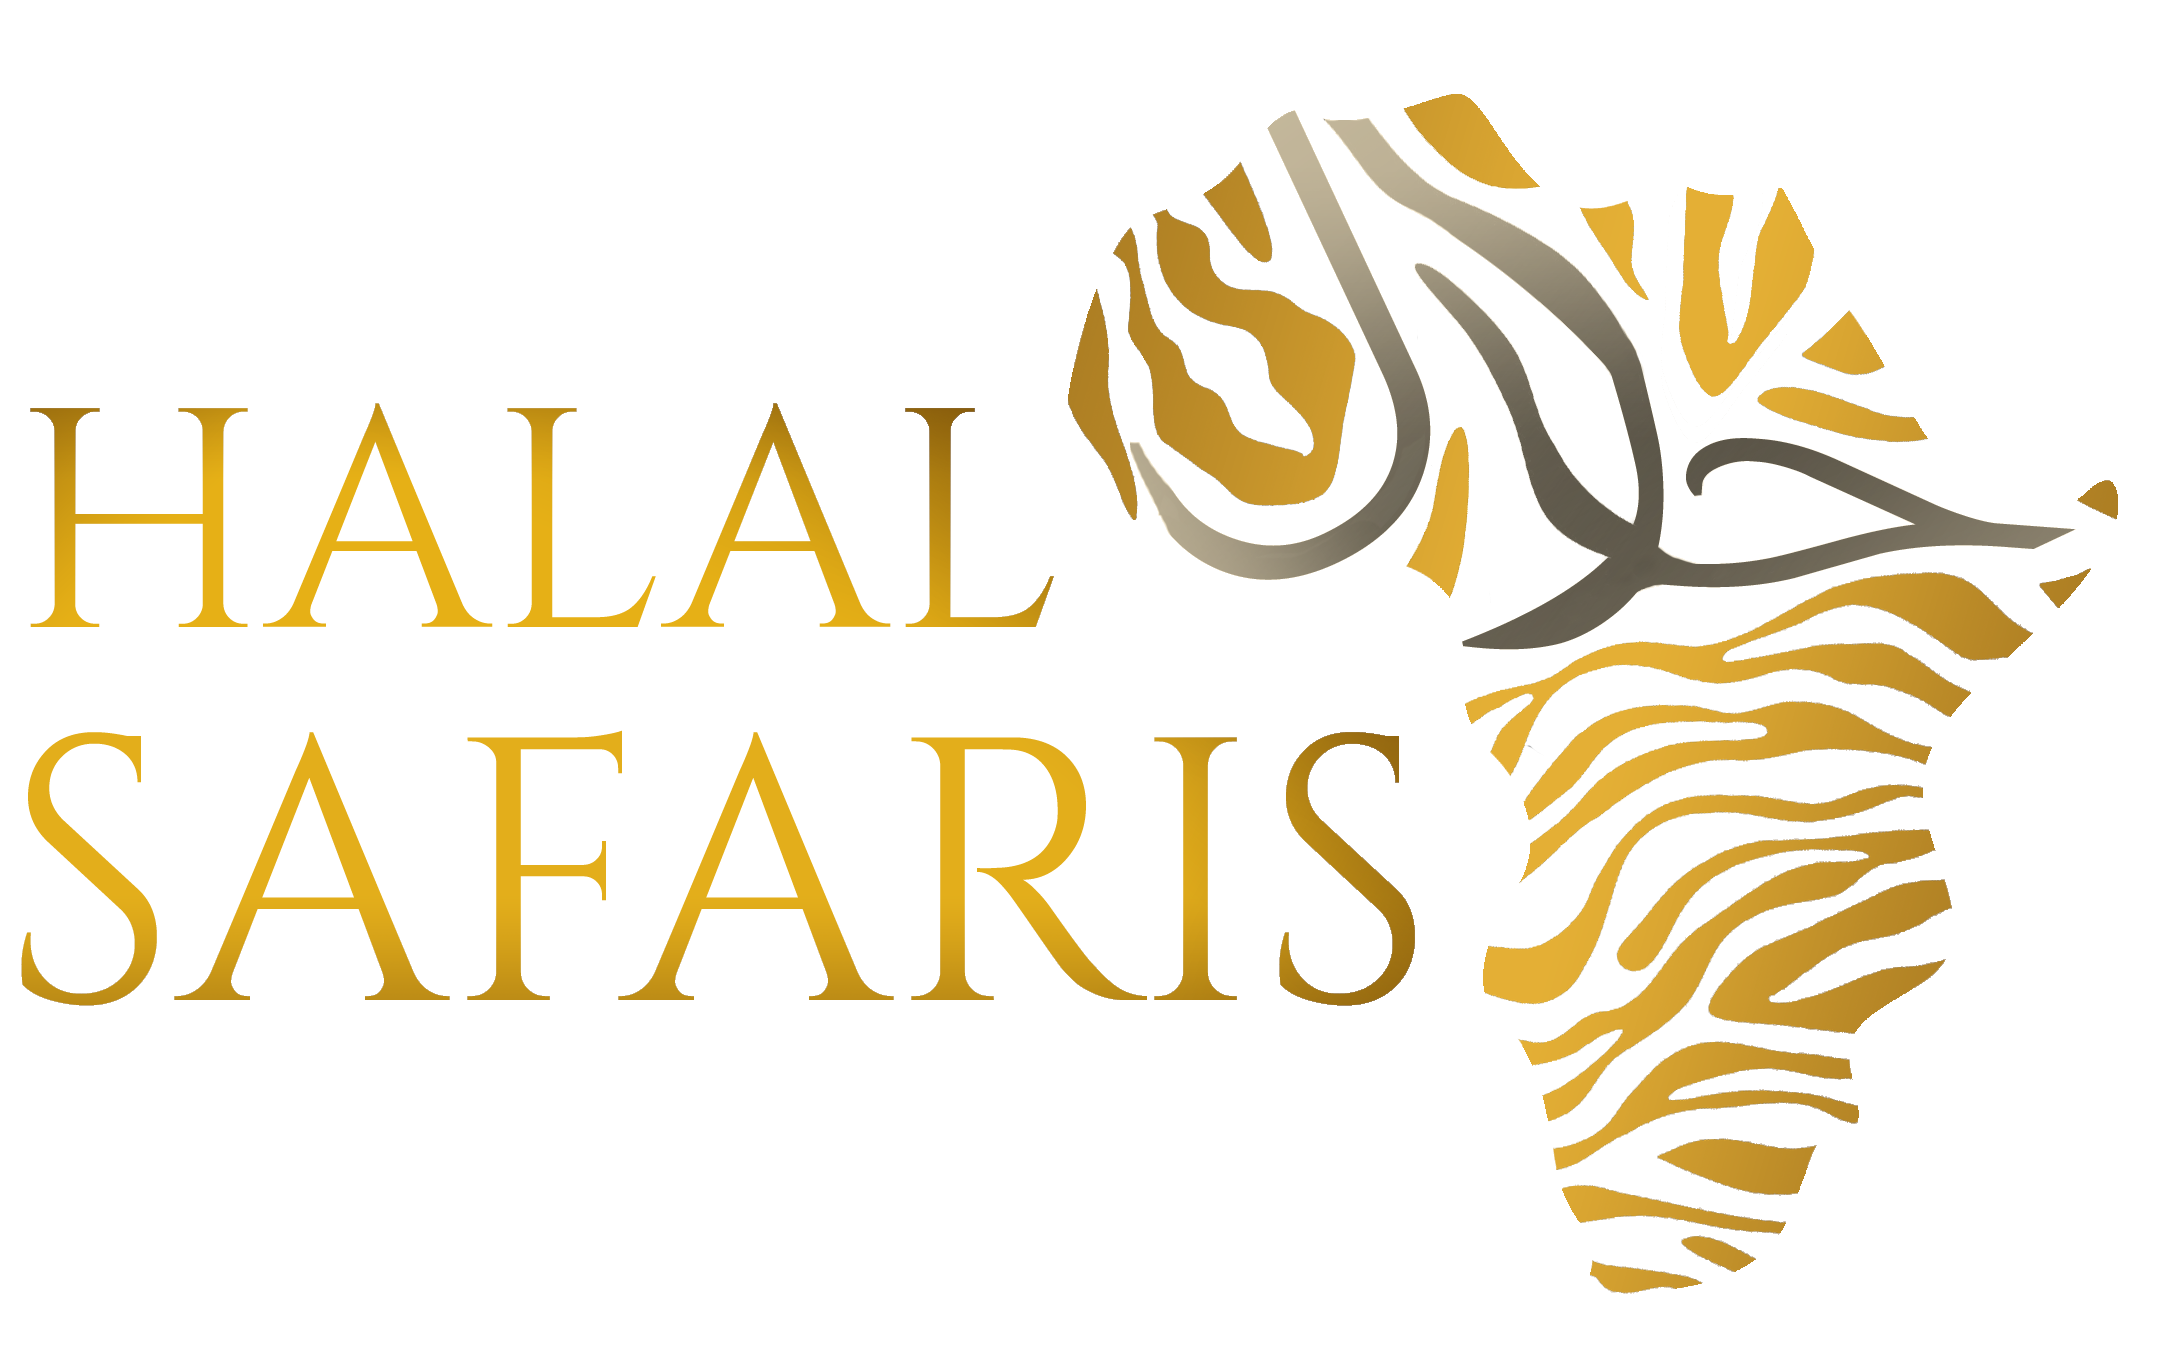 Halal Safaris